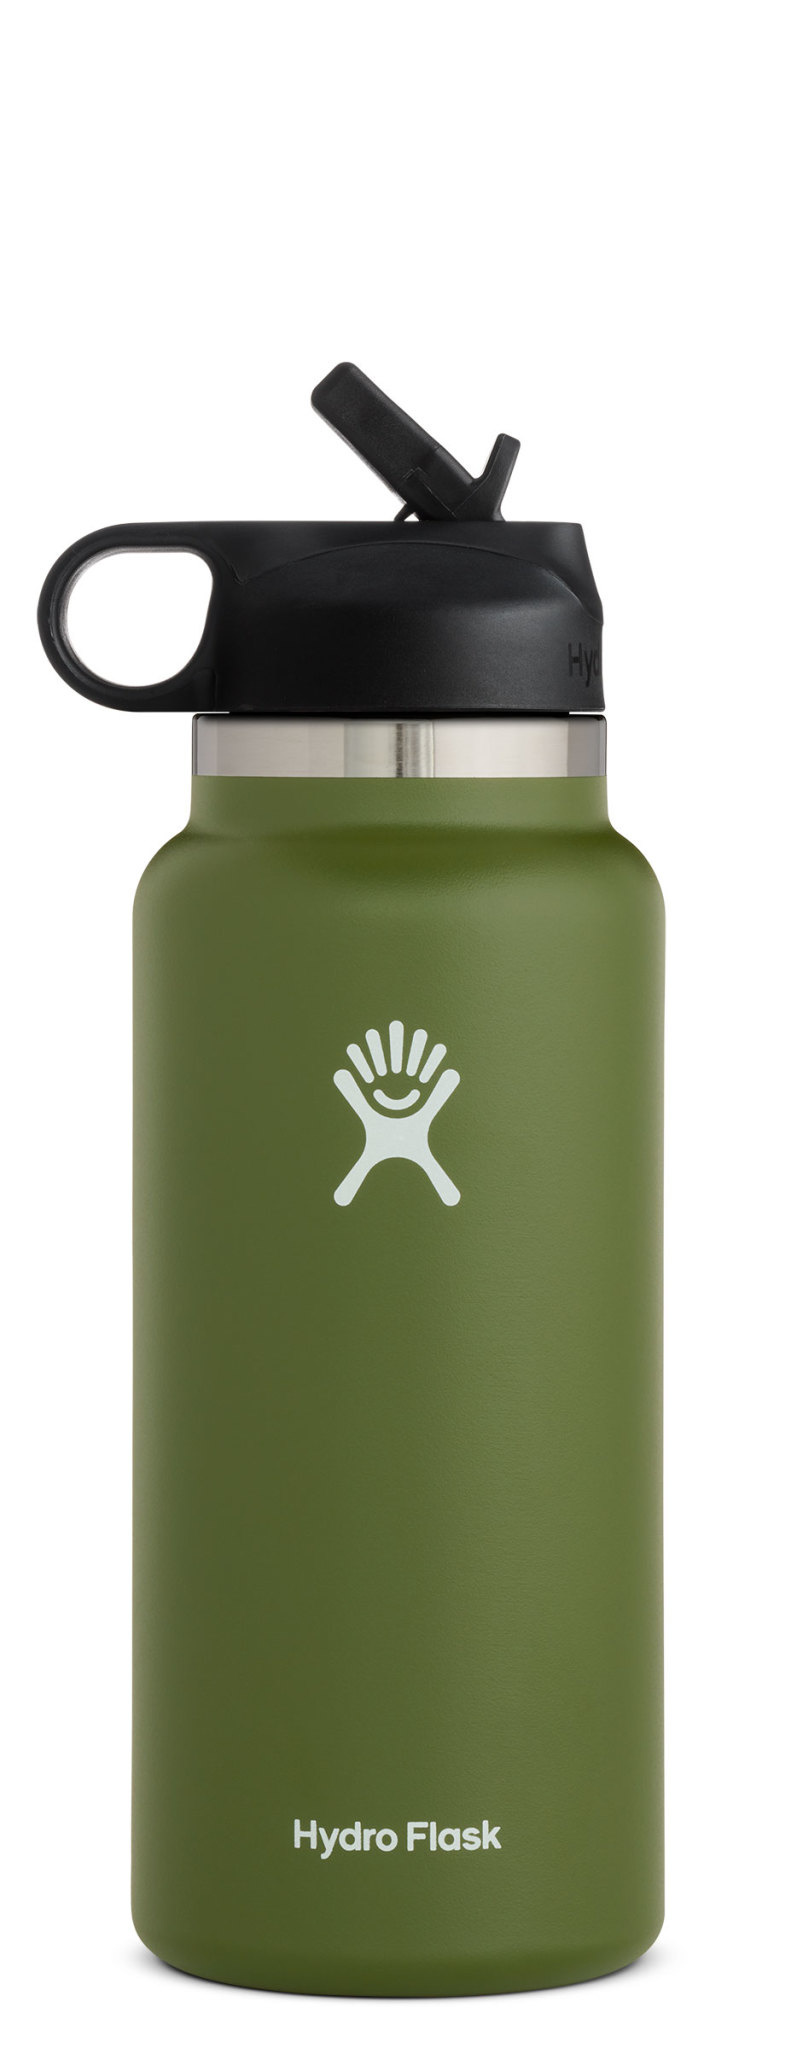 Hydro Flask 32oz Wide Mouth with Straw Lid-5